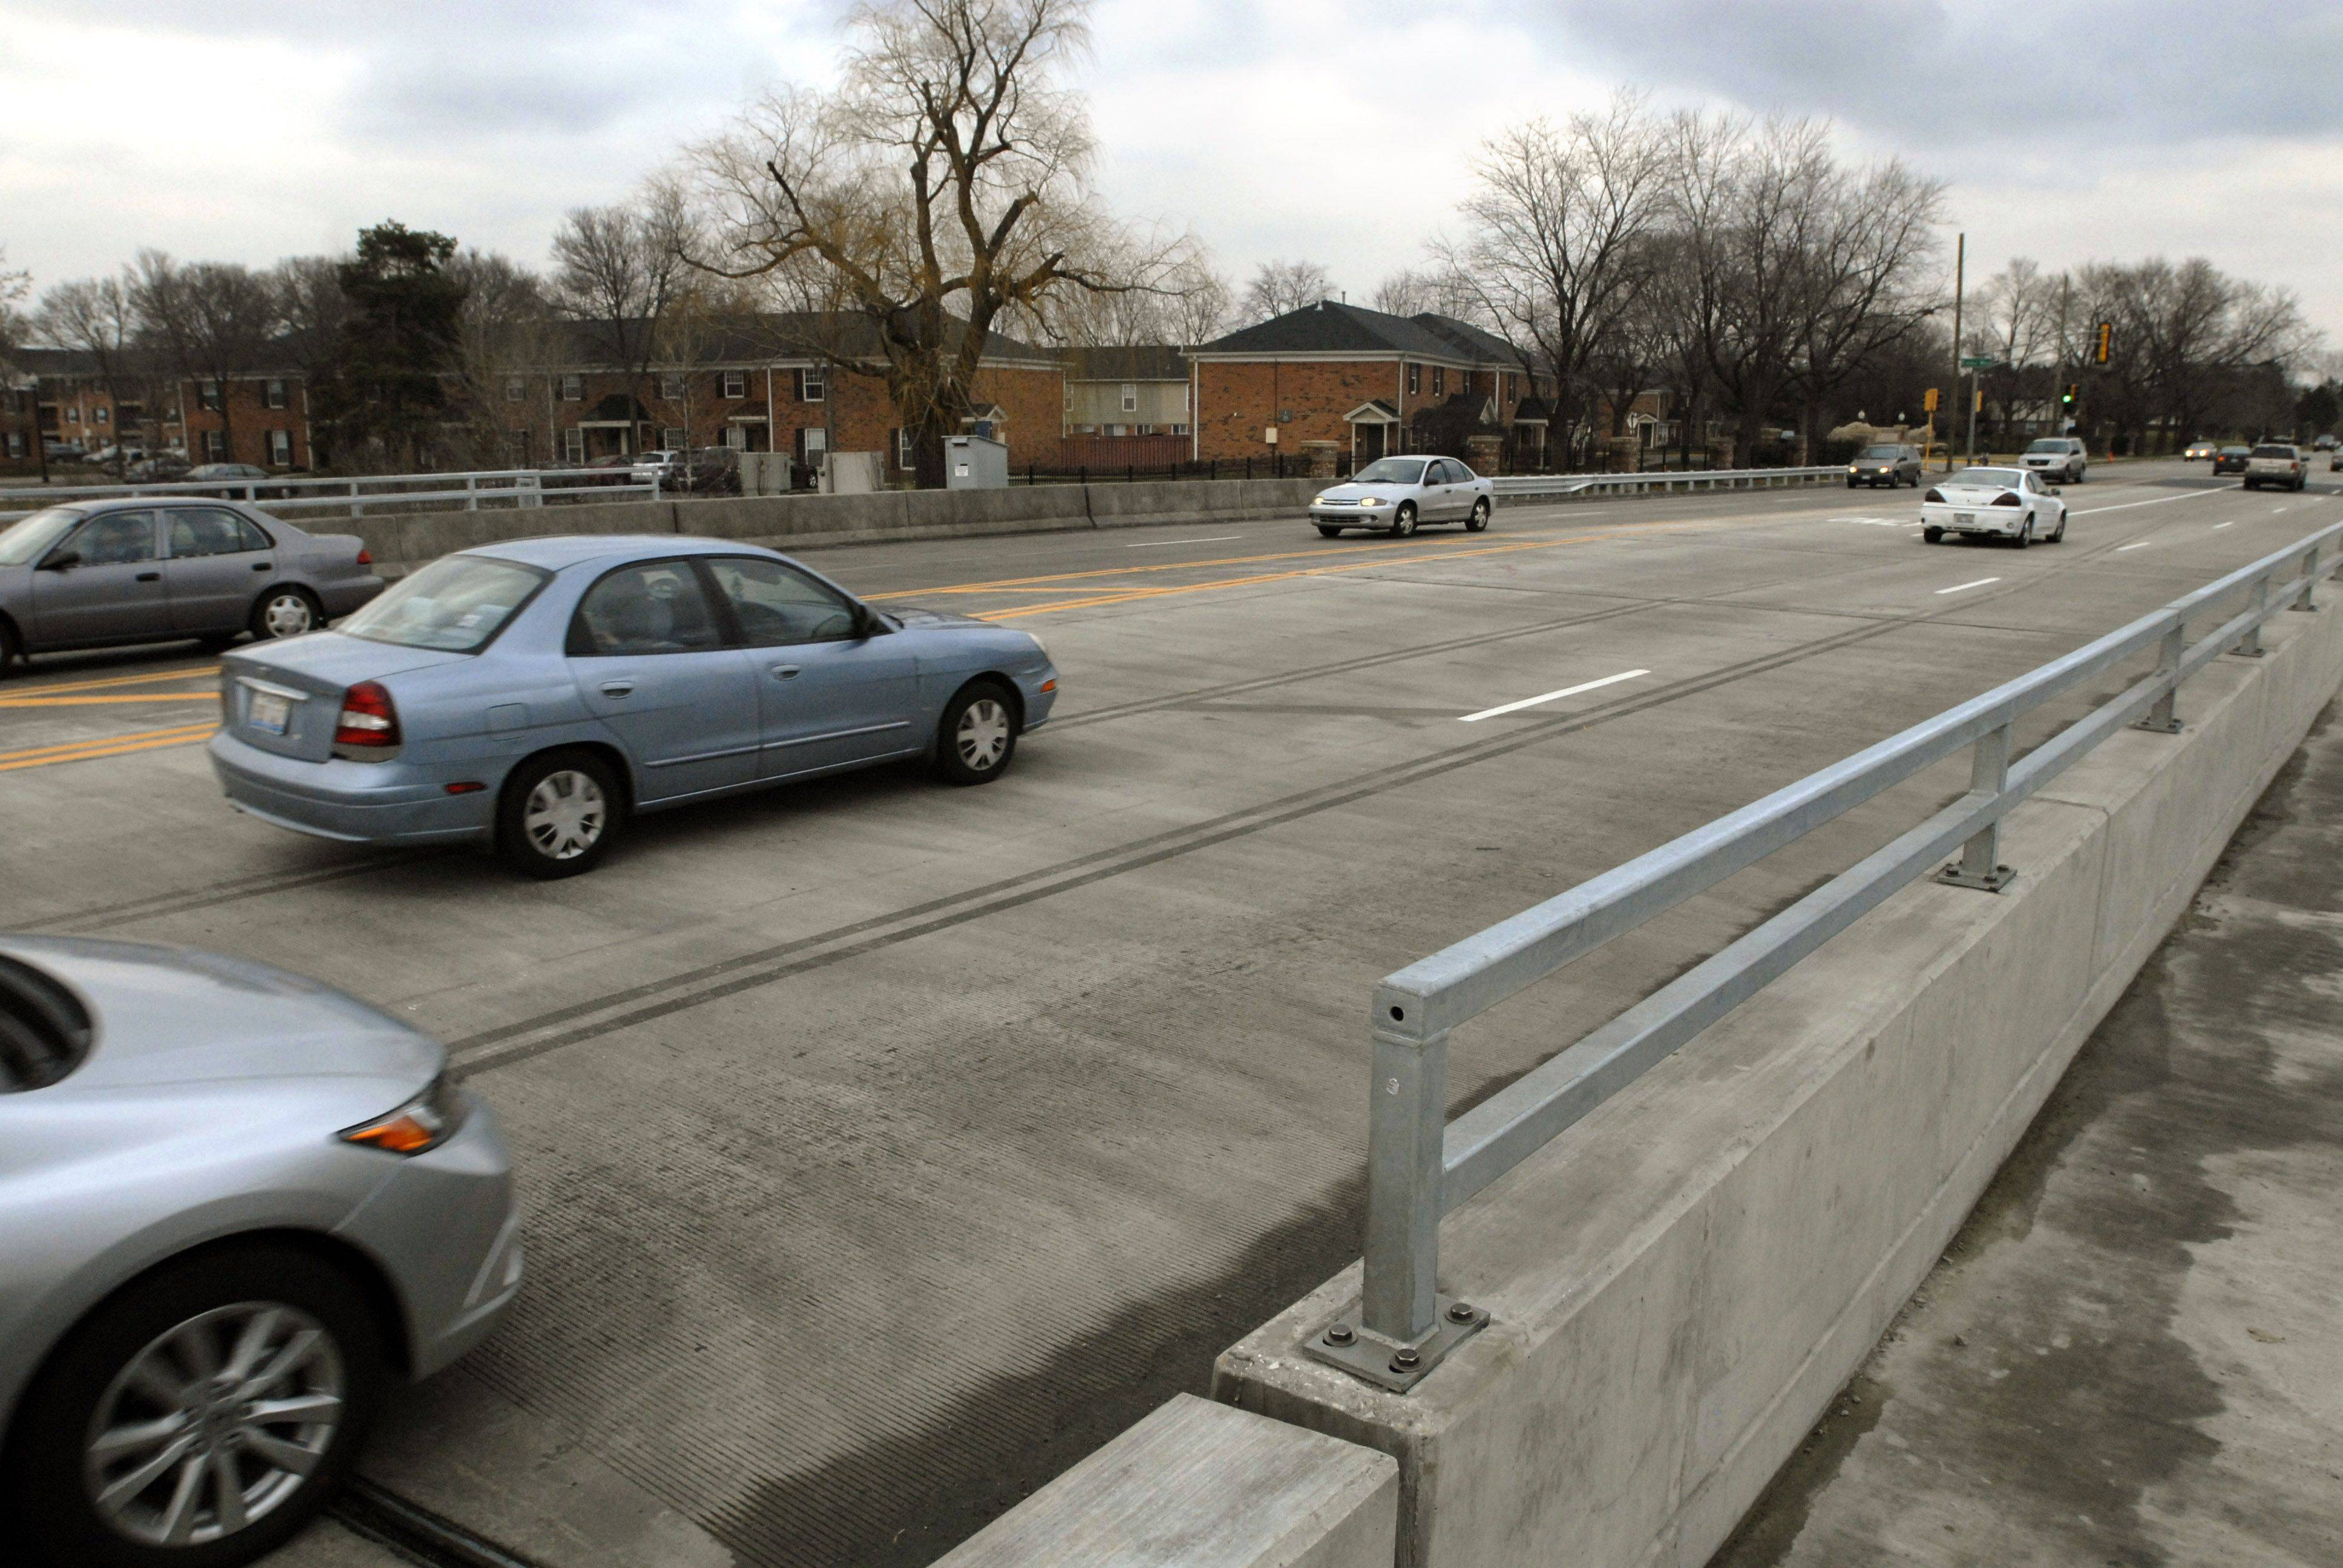 Despite spending $250 million, more suburban bridges 'deficient'